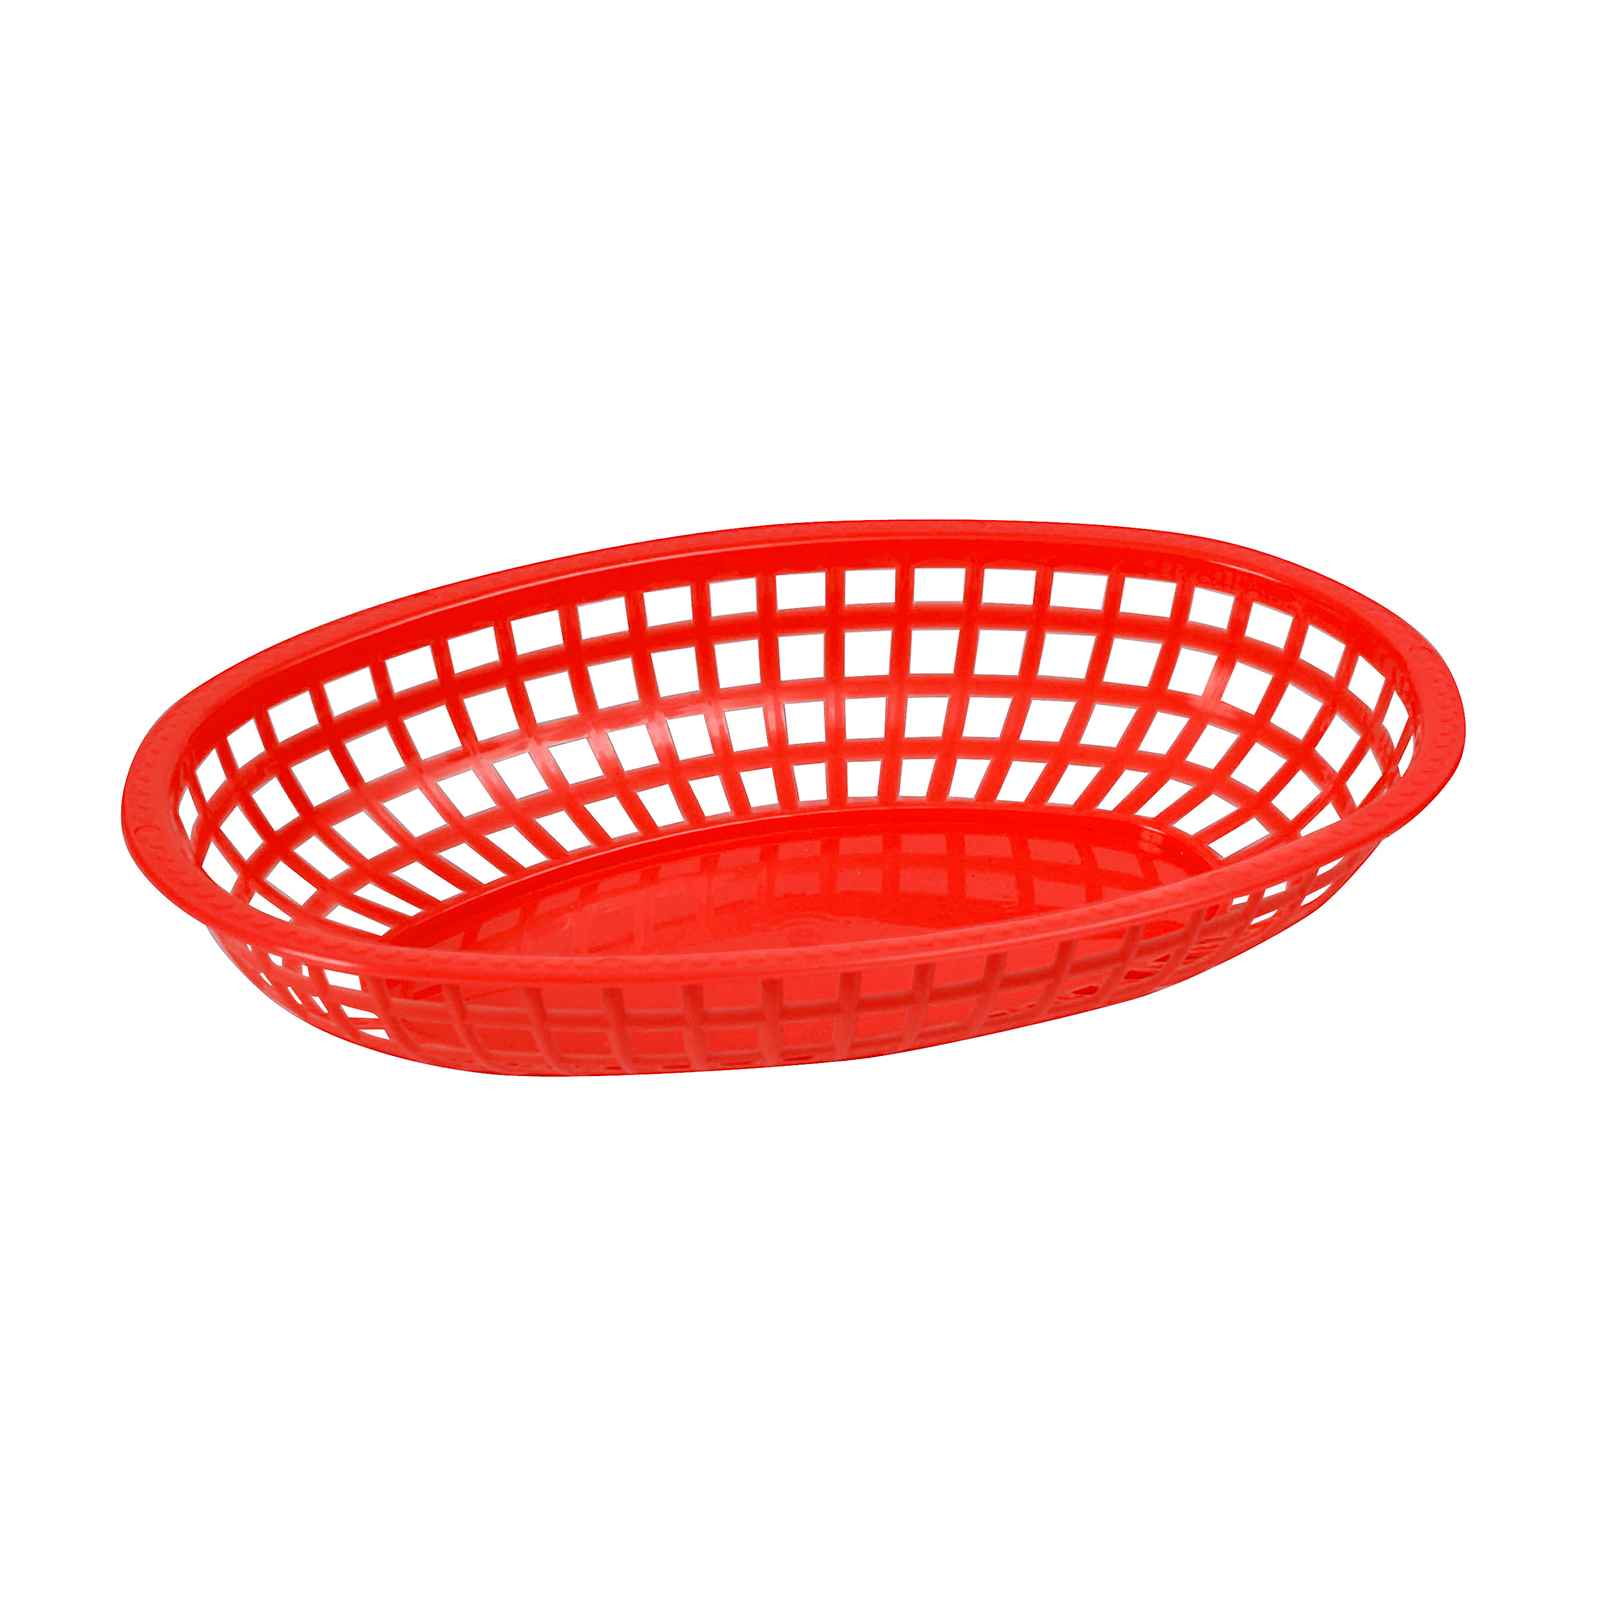 Winco POB-R basket, fast food